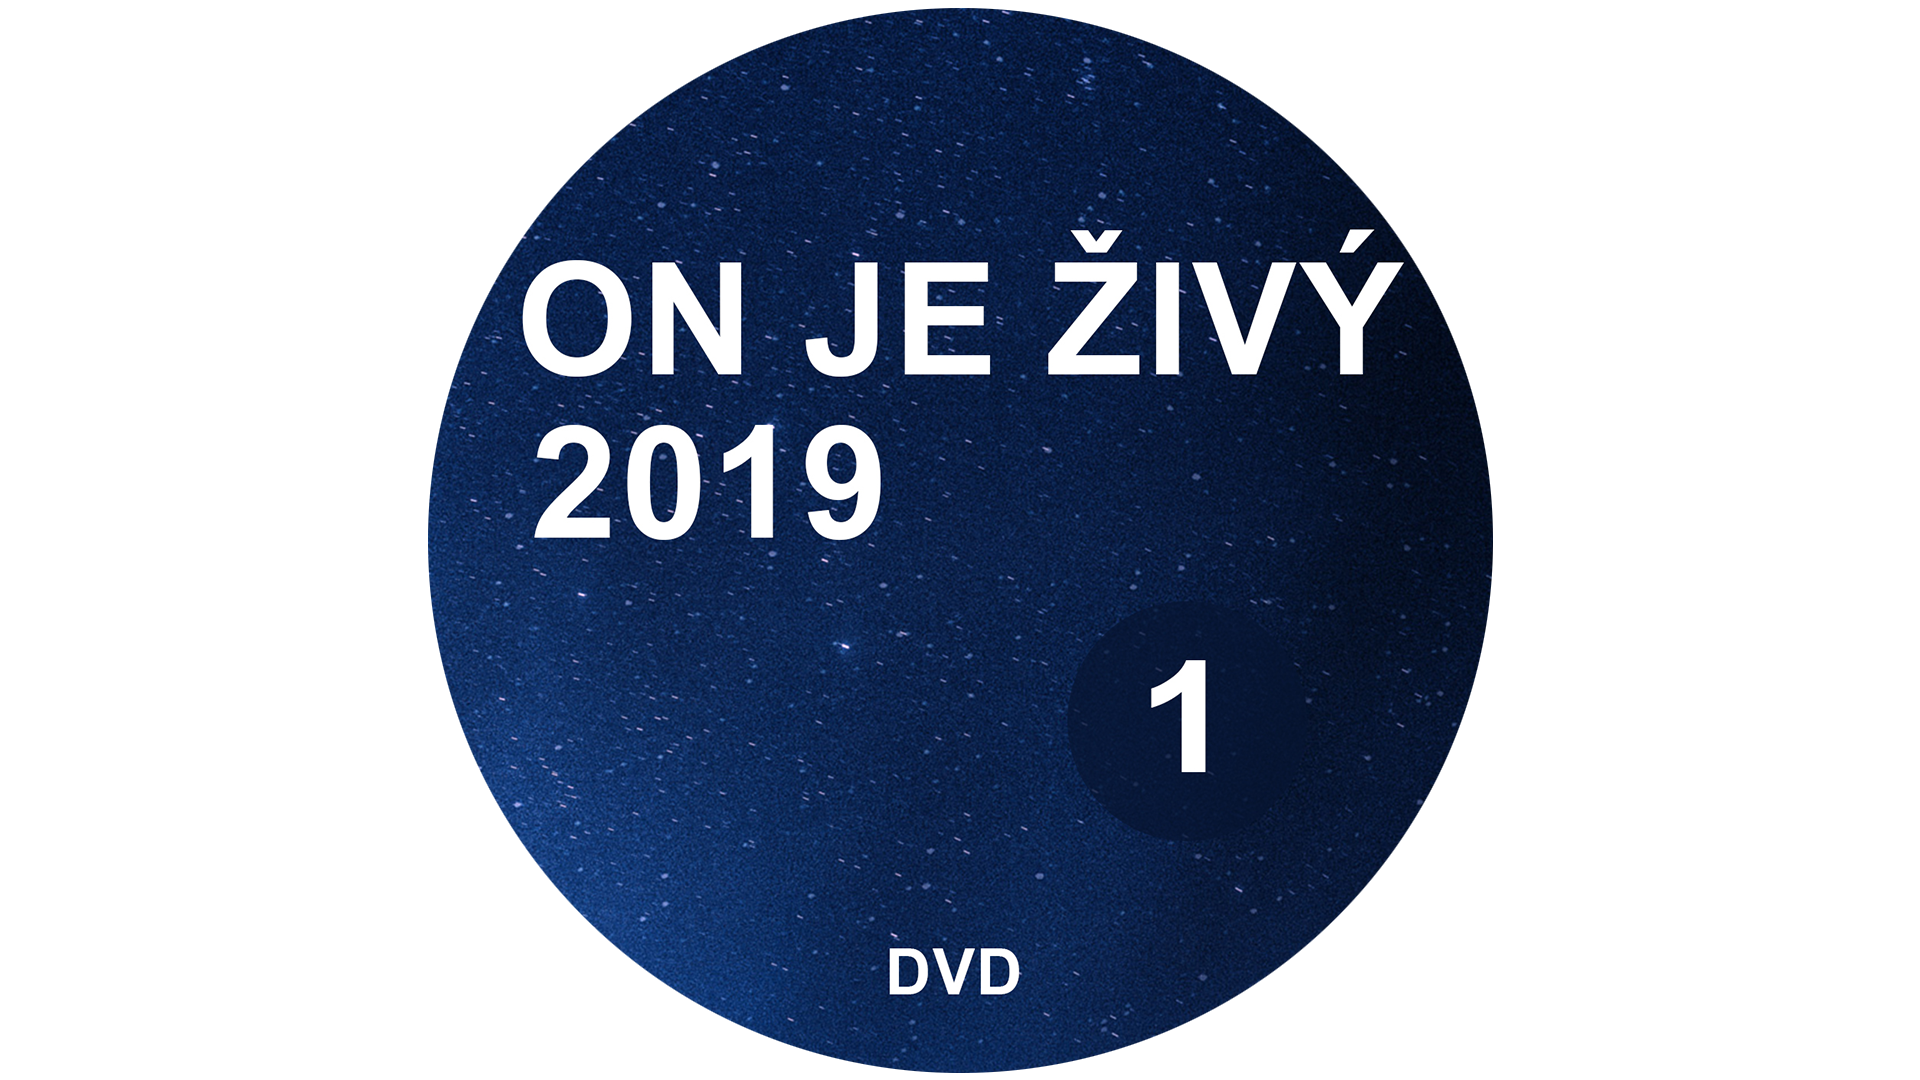 ON JE ŽIVÝ 2019 DVD1